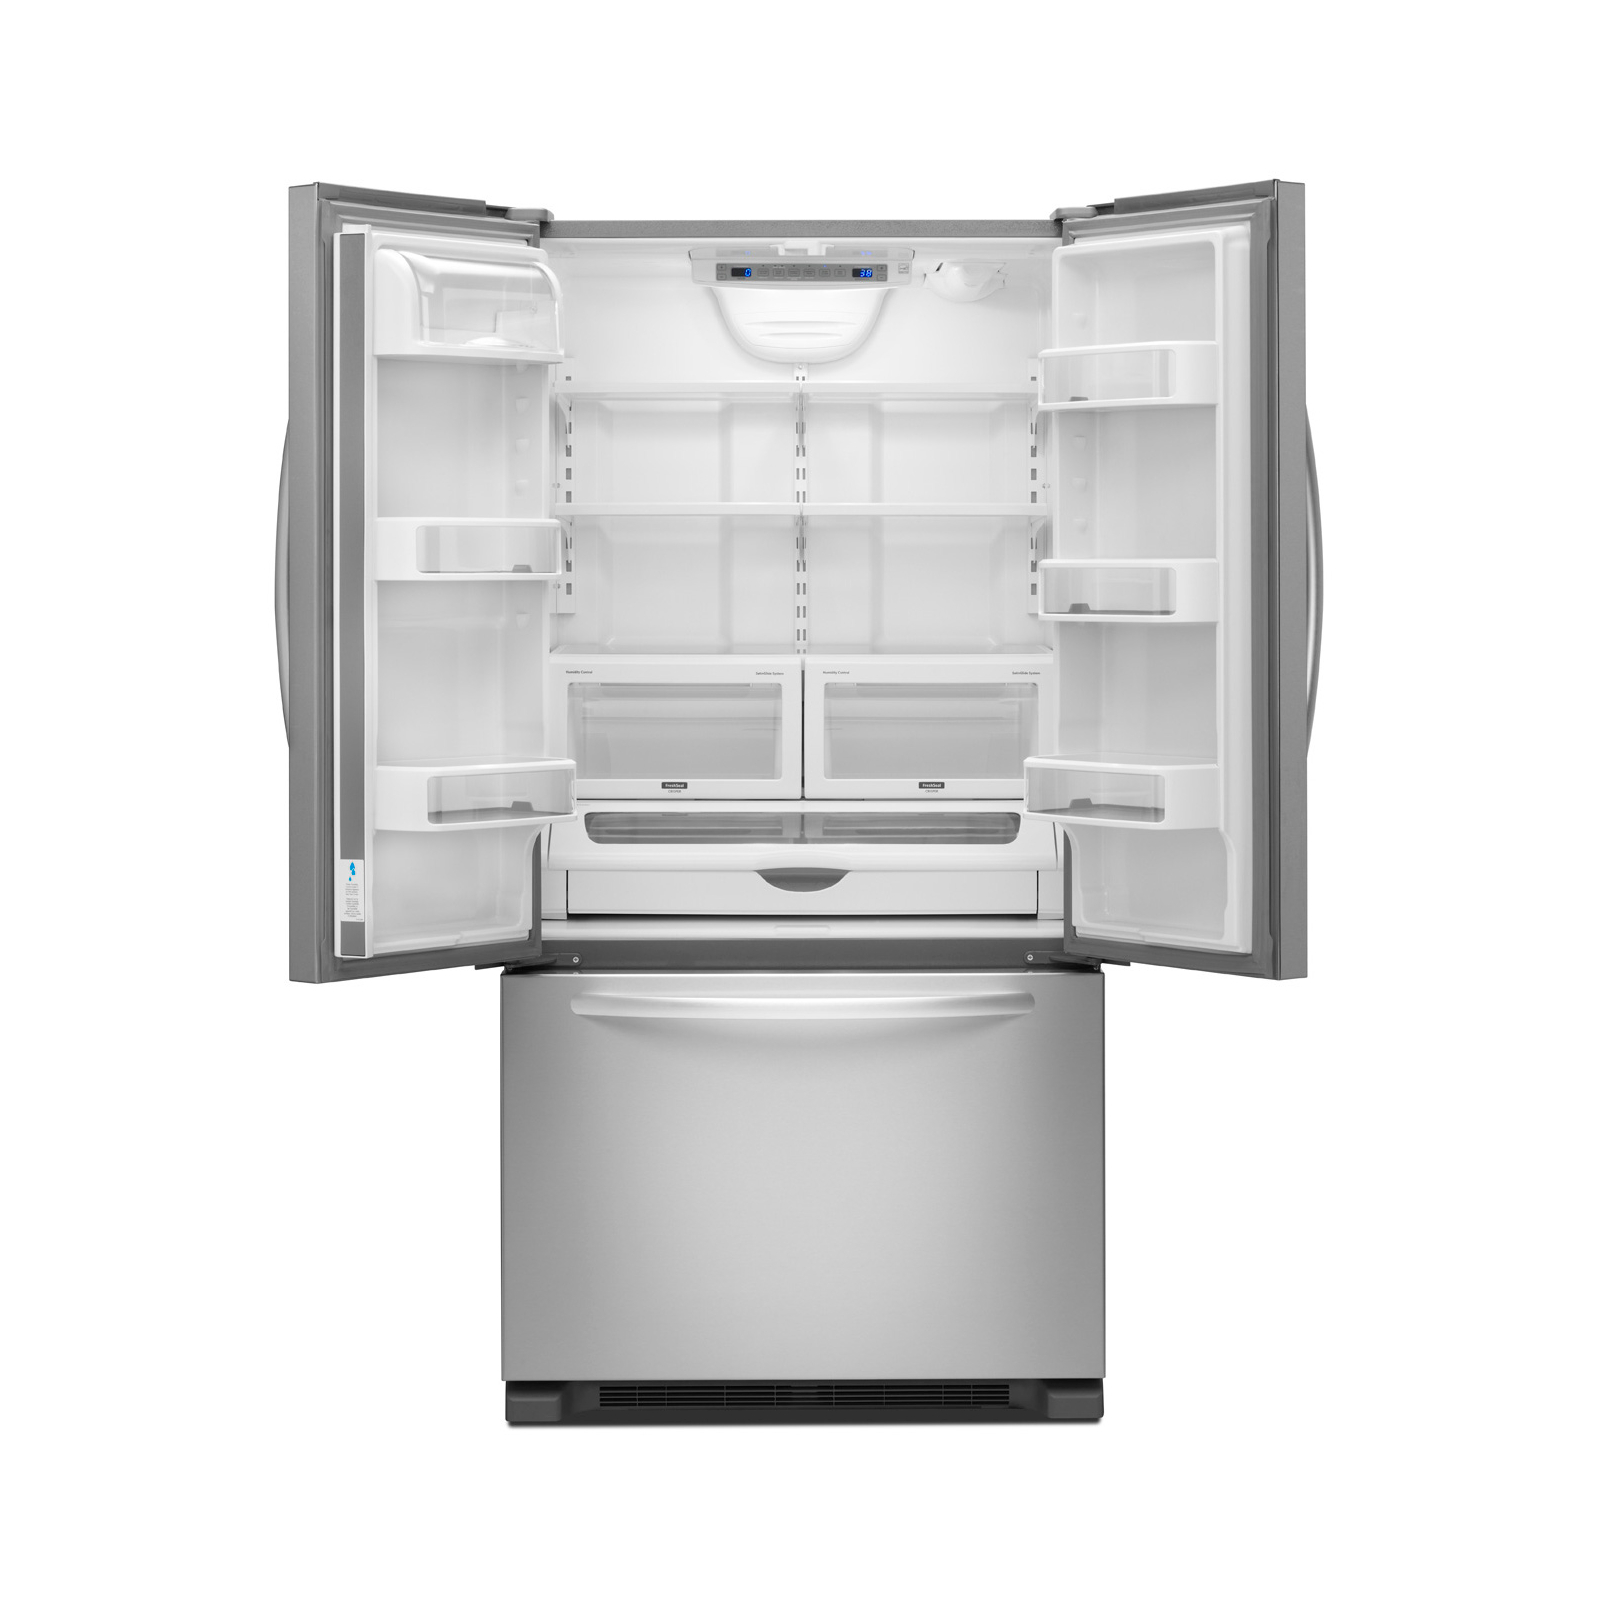 Kitchenaid Krff302ess Kitchenaid Kfcs22evms 21 9 Cu Ft French Door Refrigerator